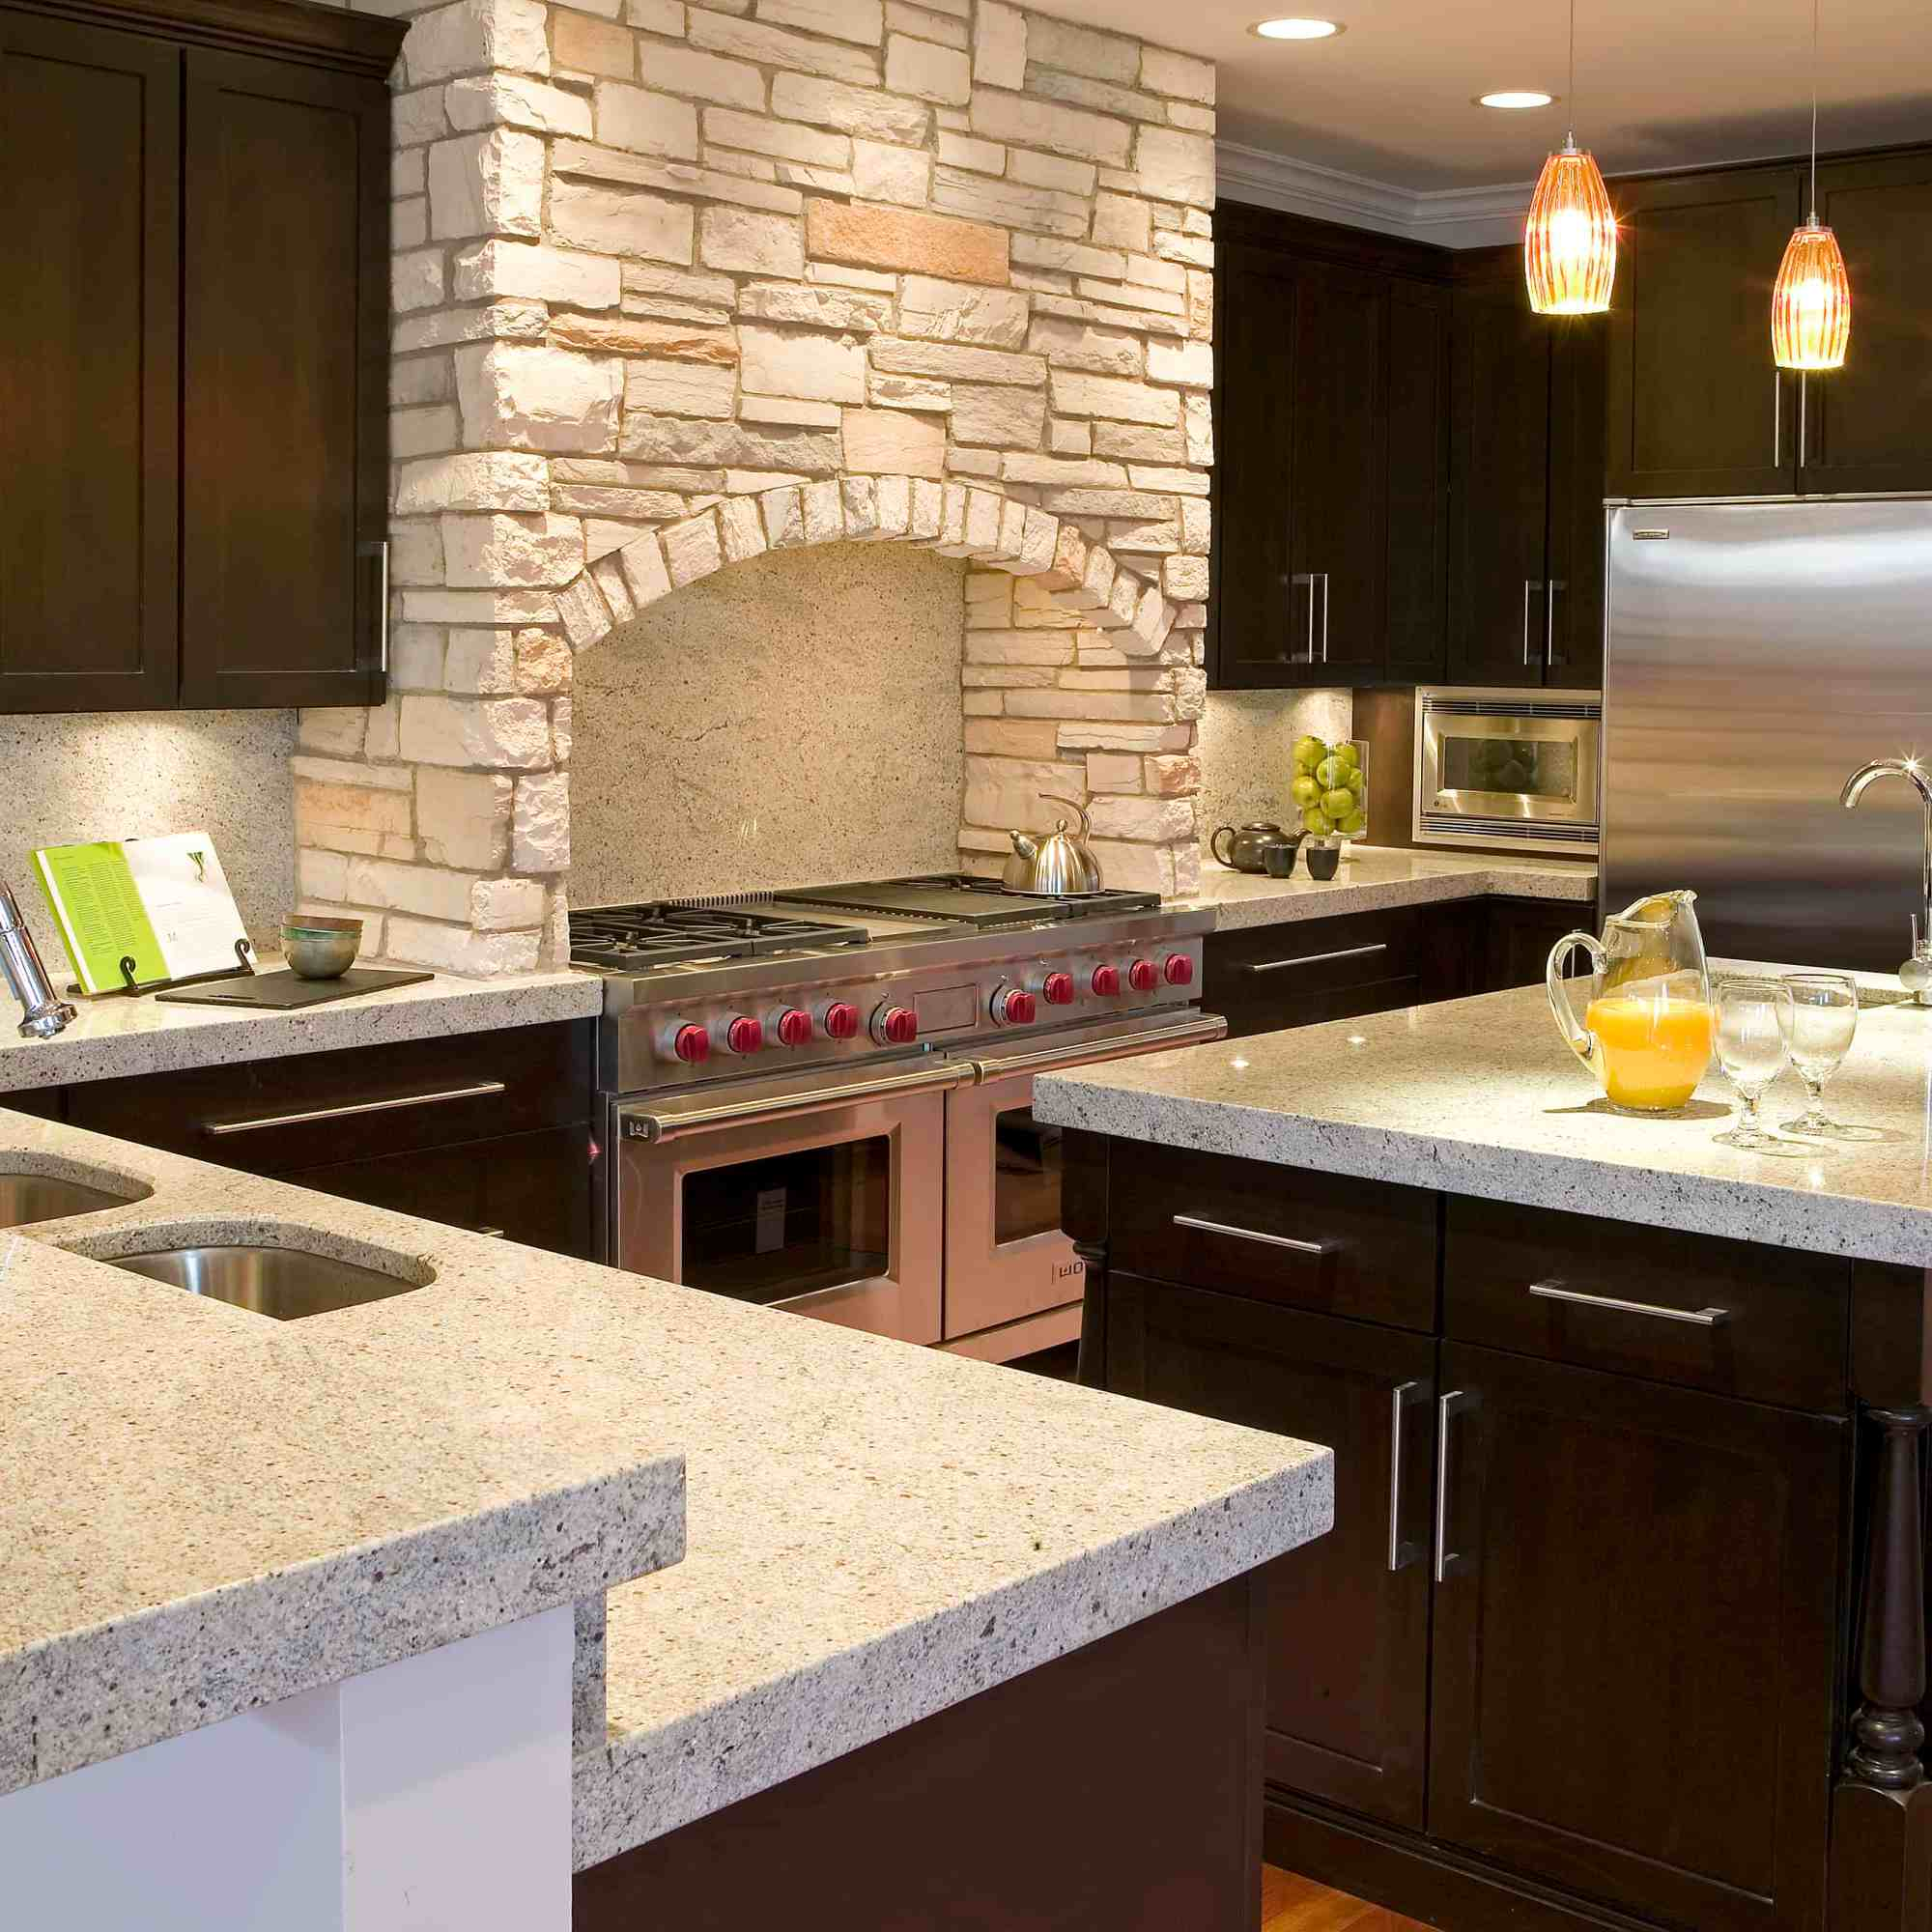 Residential Construction - Chicago - Renovation